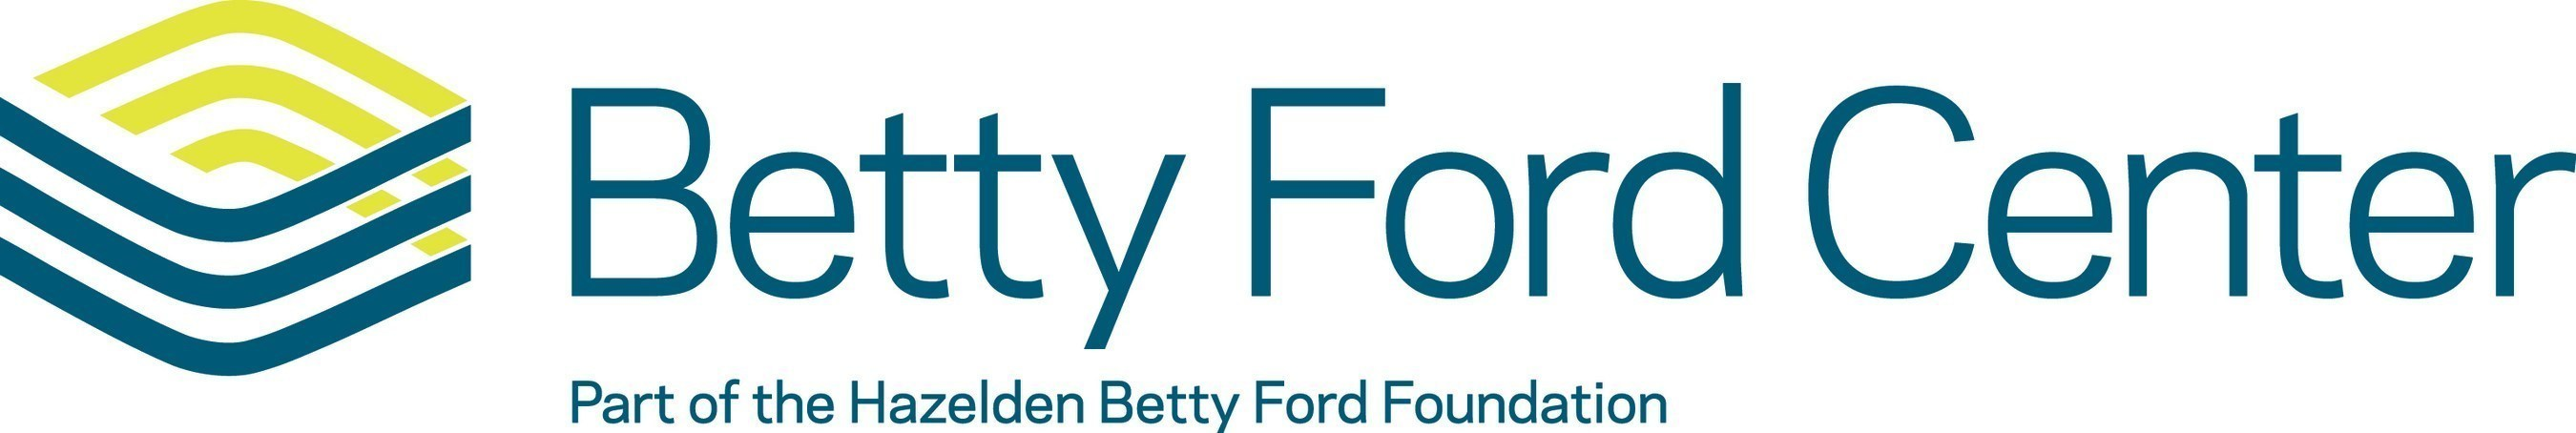 part of the Hazelden Betty Ford Foundation